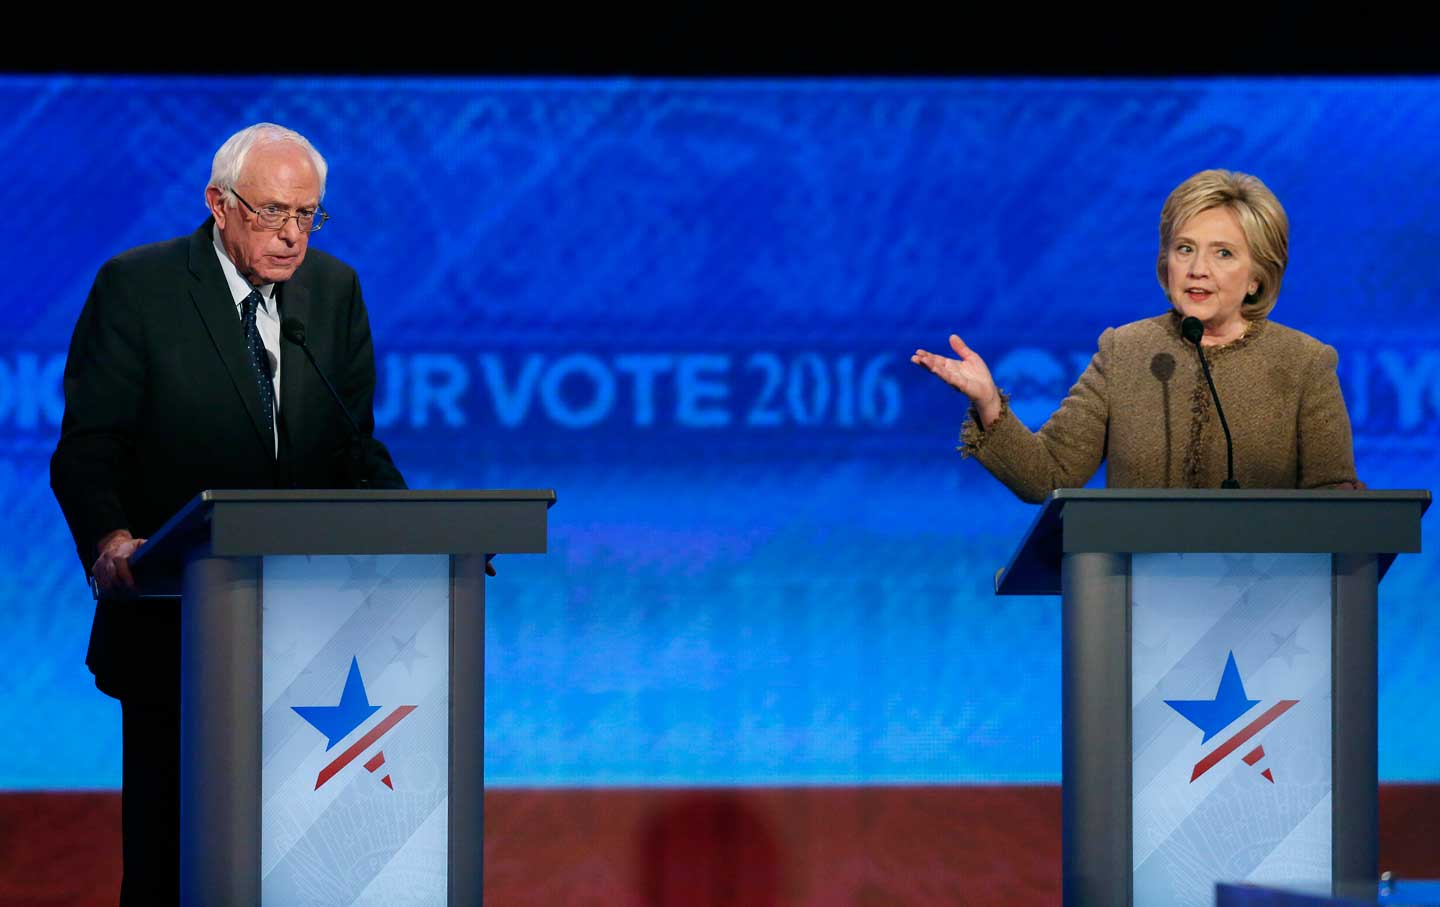 Bernie Sanders and Hillary Clinton during the Democratic presidential primary debate, Saturday, December 19, 2015, at Saint Anselm College in Manchester, New Hampshire.